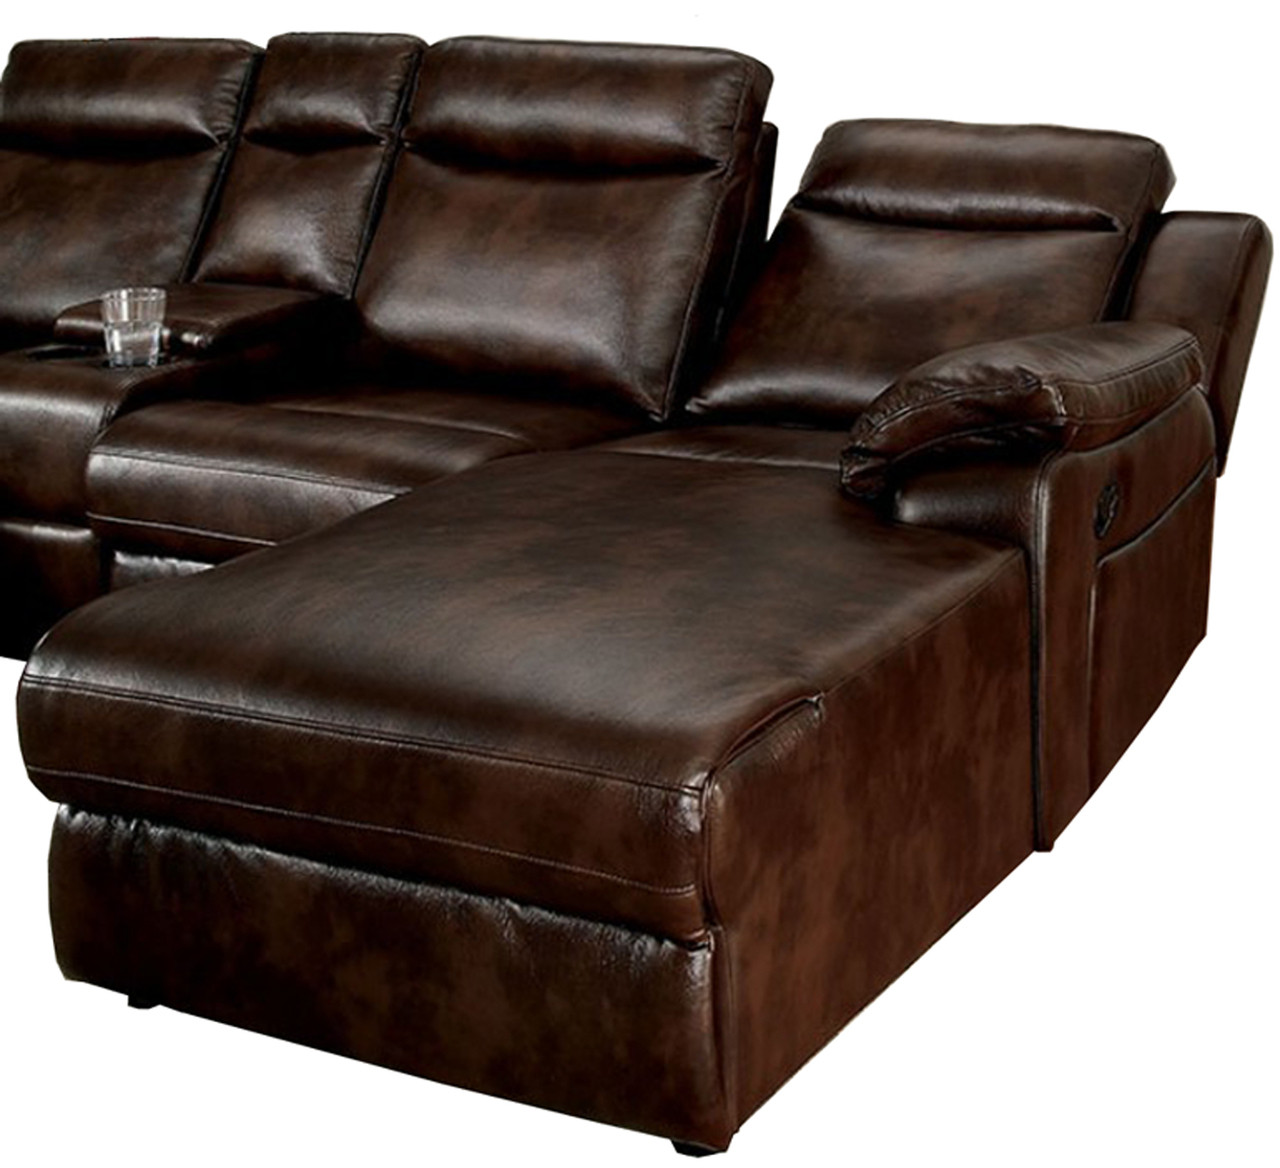 Super Bison Brown Leatherette Sectional With Console Theyellowbook Wood Chair Design Ideas Theyellowbookinfo